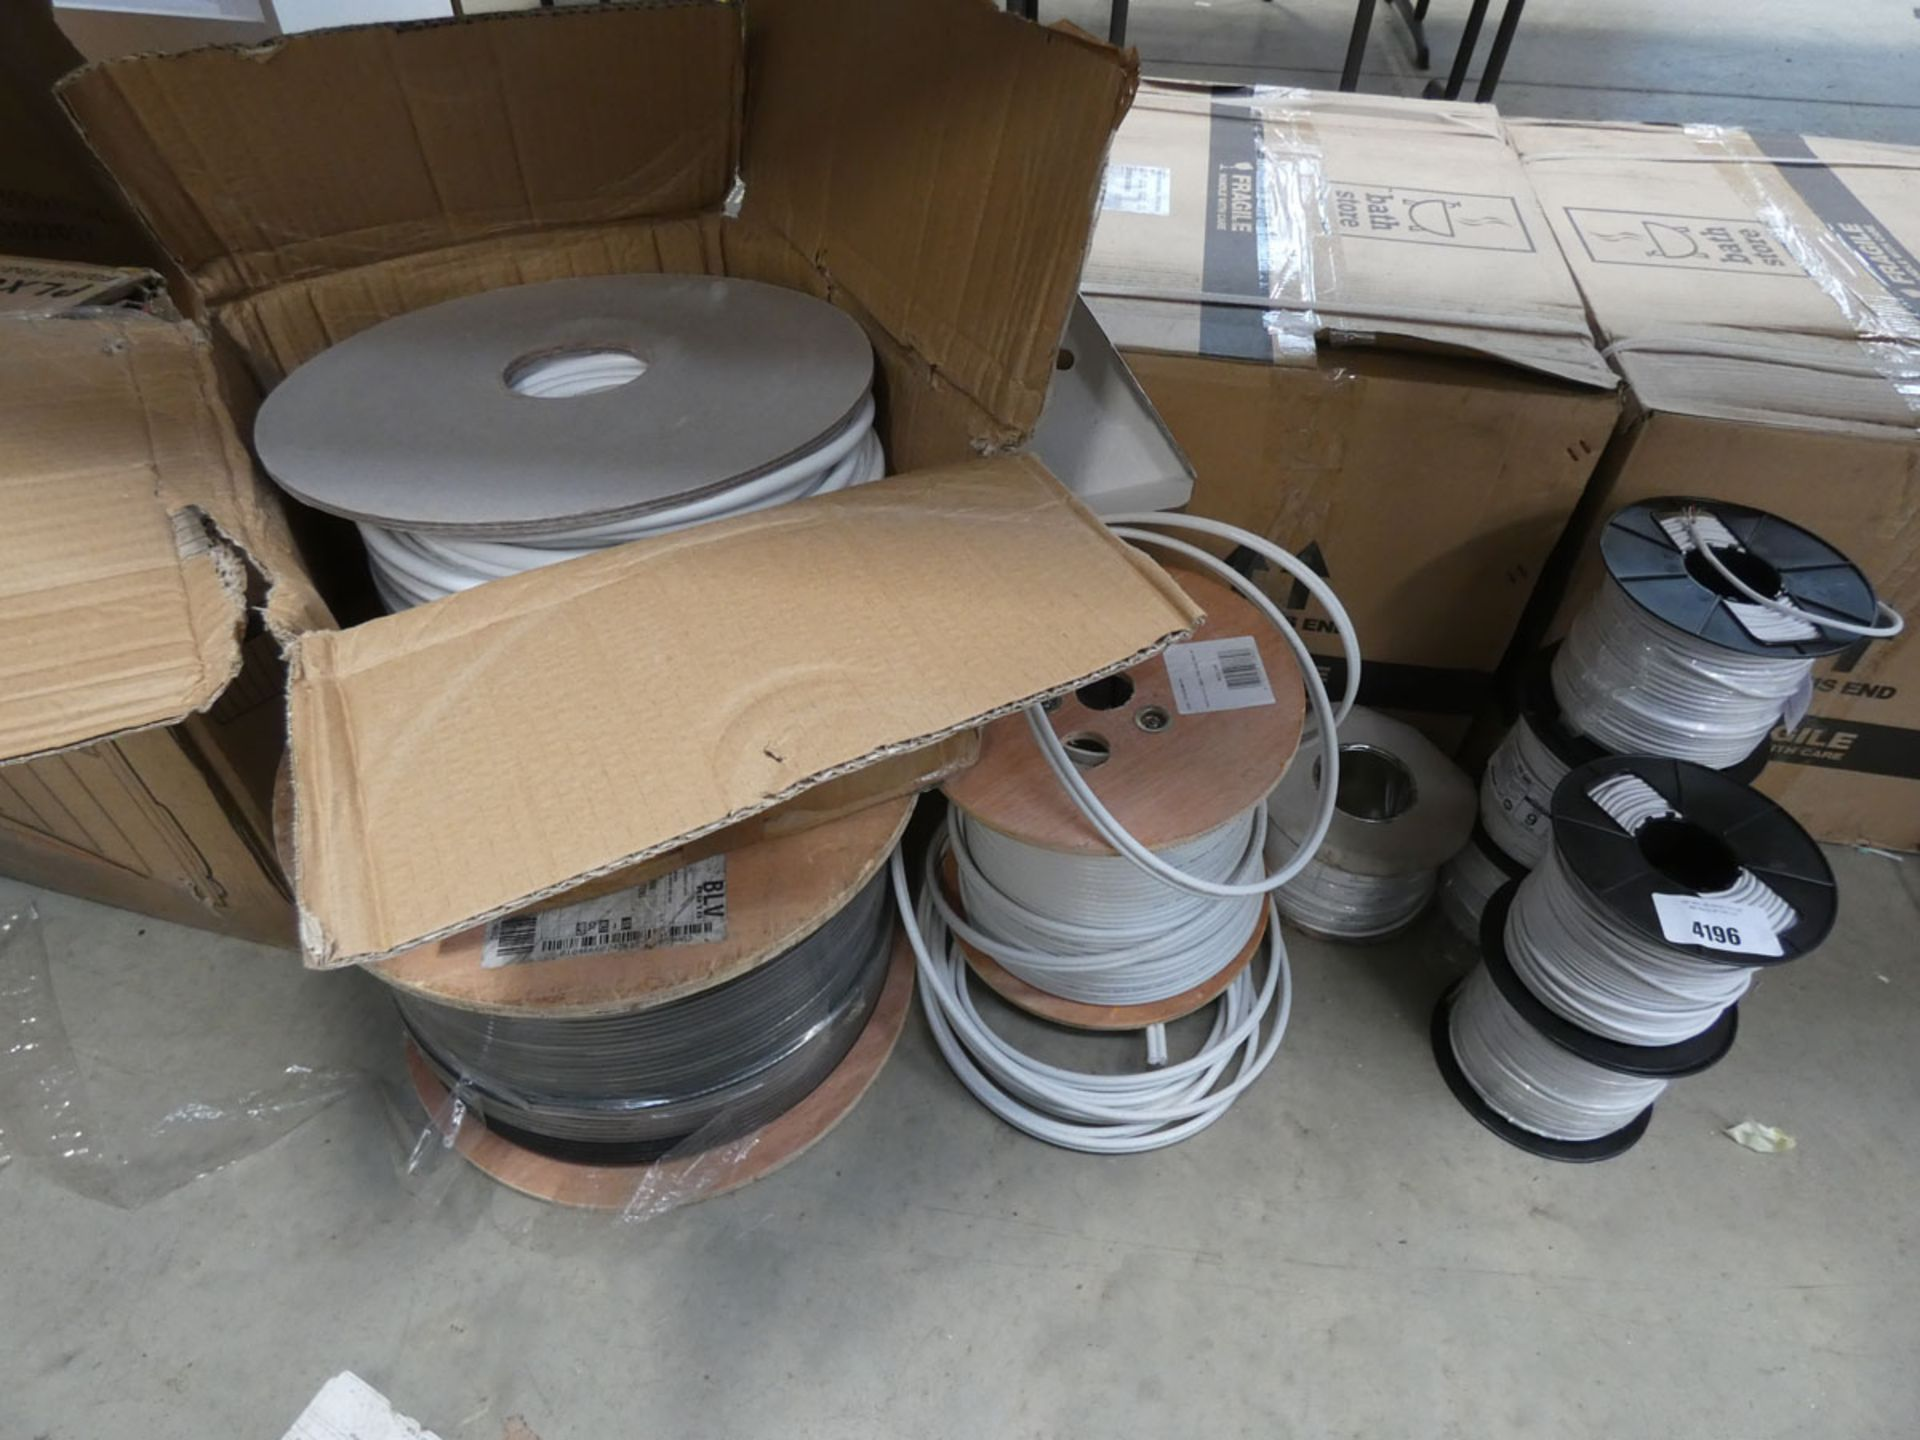 7 rolls of speaker cable and quantity of white and black cable